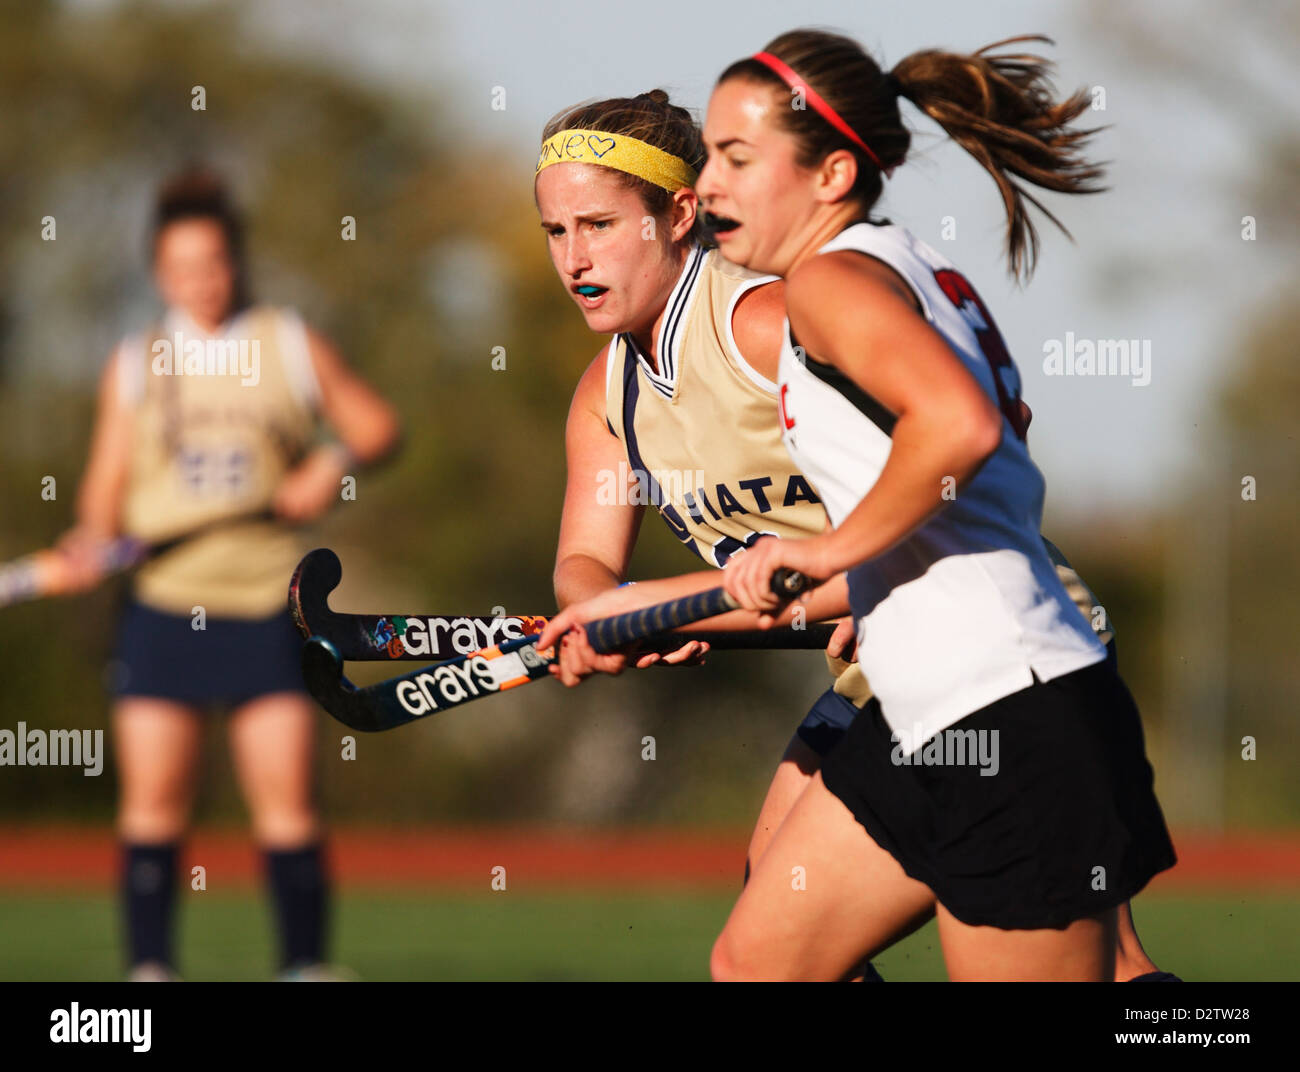 Players from Juniata College (L) and Catholic University (R) compete in the Landmark Conference field hockey championship. - Stock Image